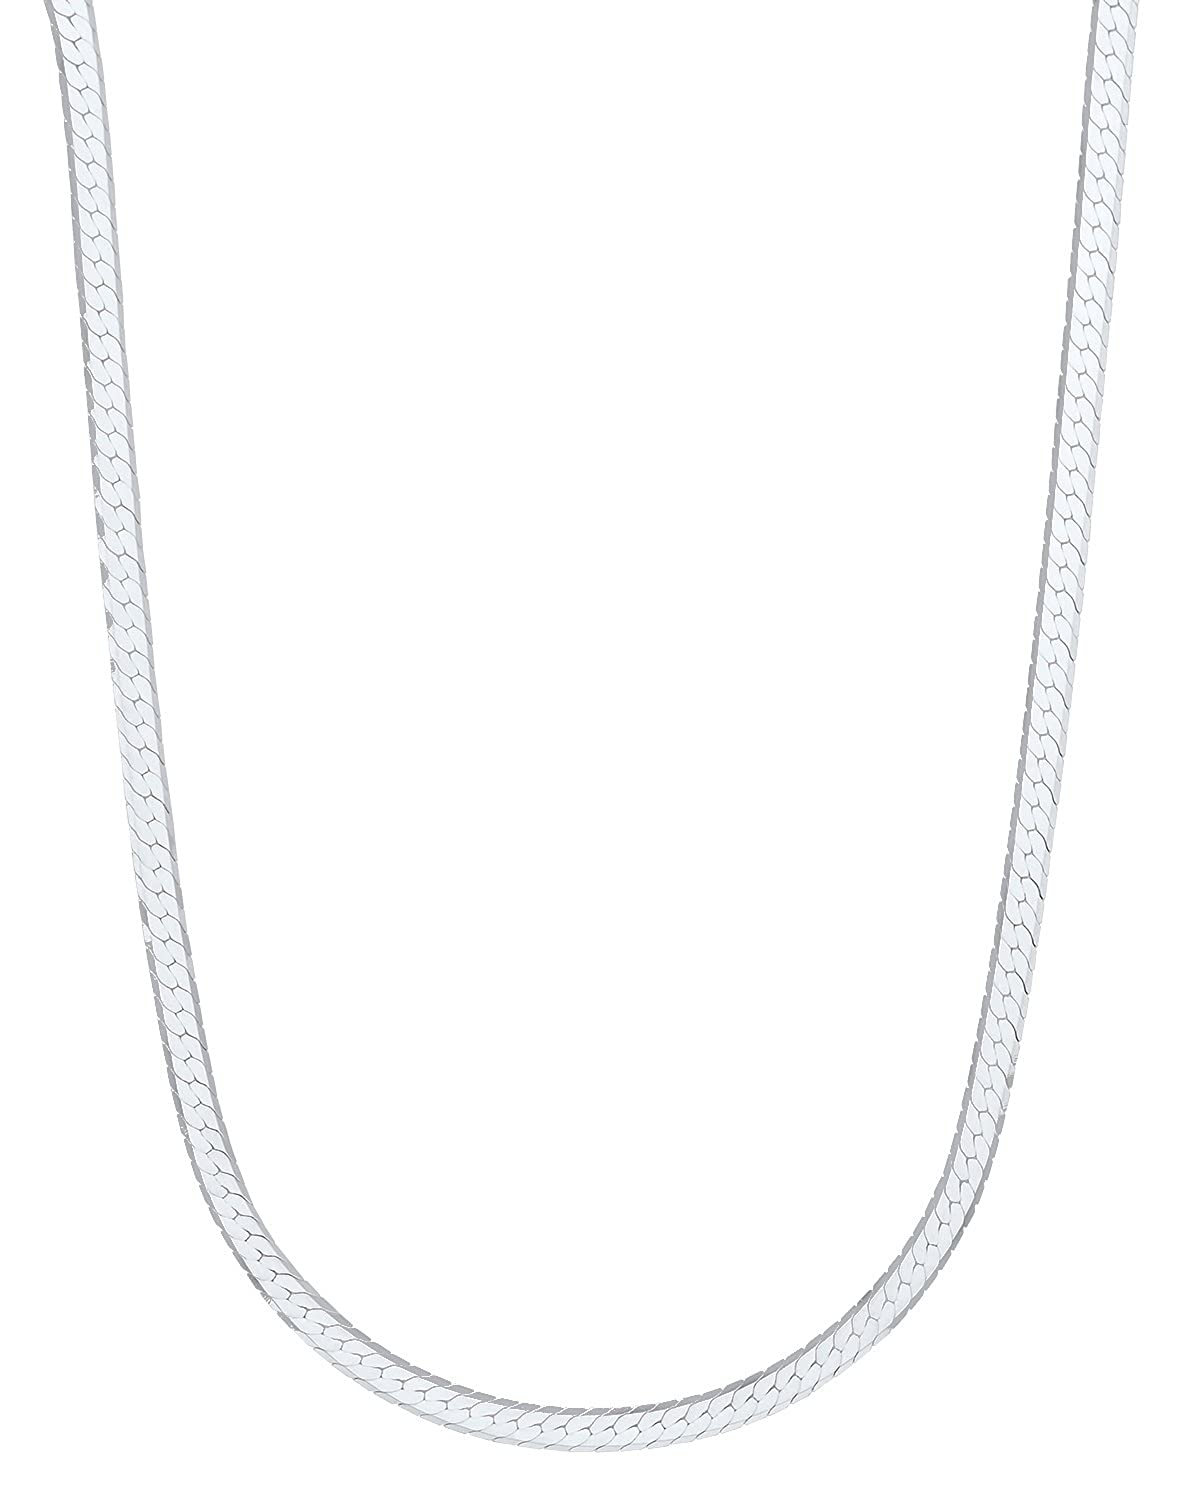 18202430 Made In Italy Jewelry Cloth 3mm 925 Sterling Silver Herringbone Chain Necklace